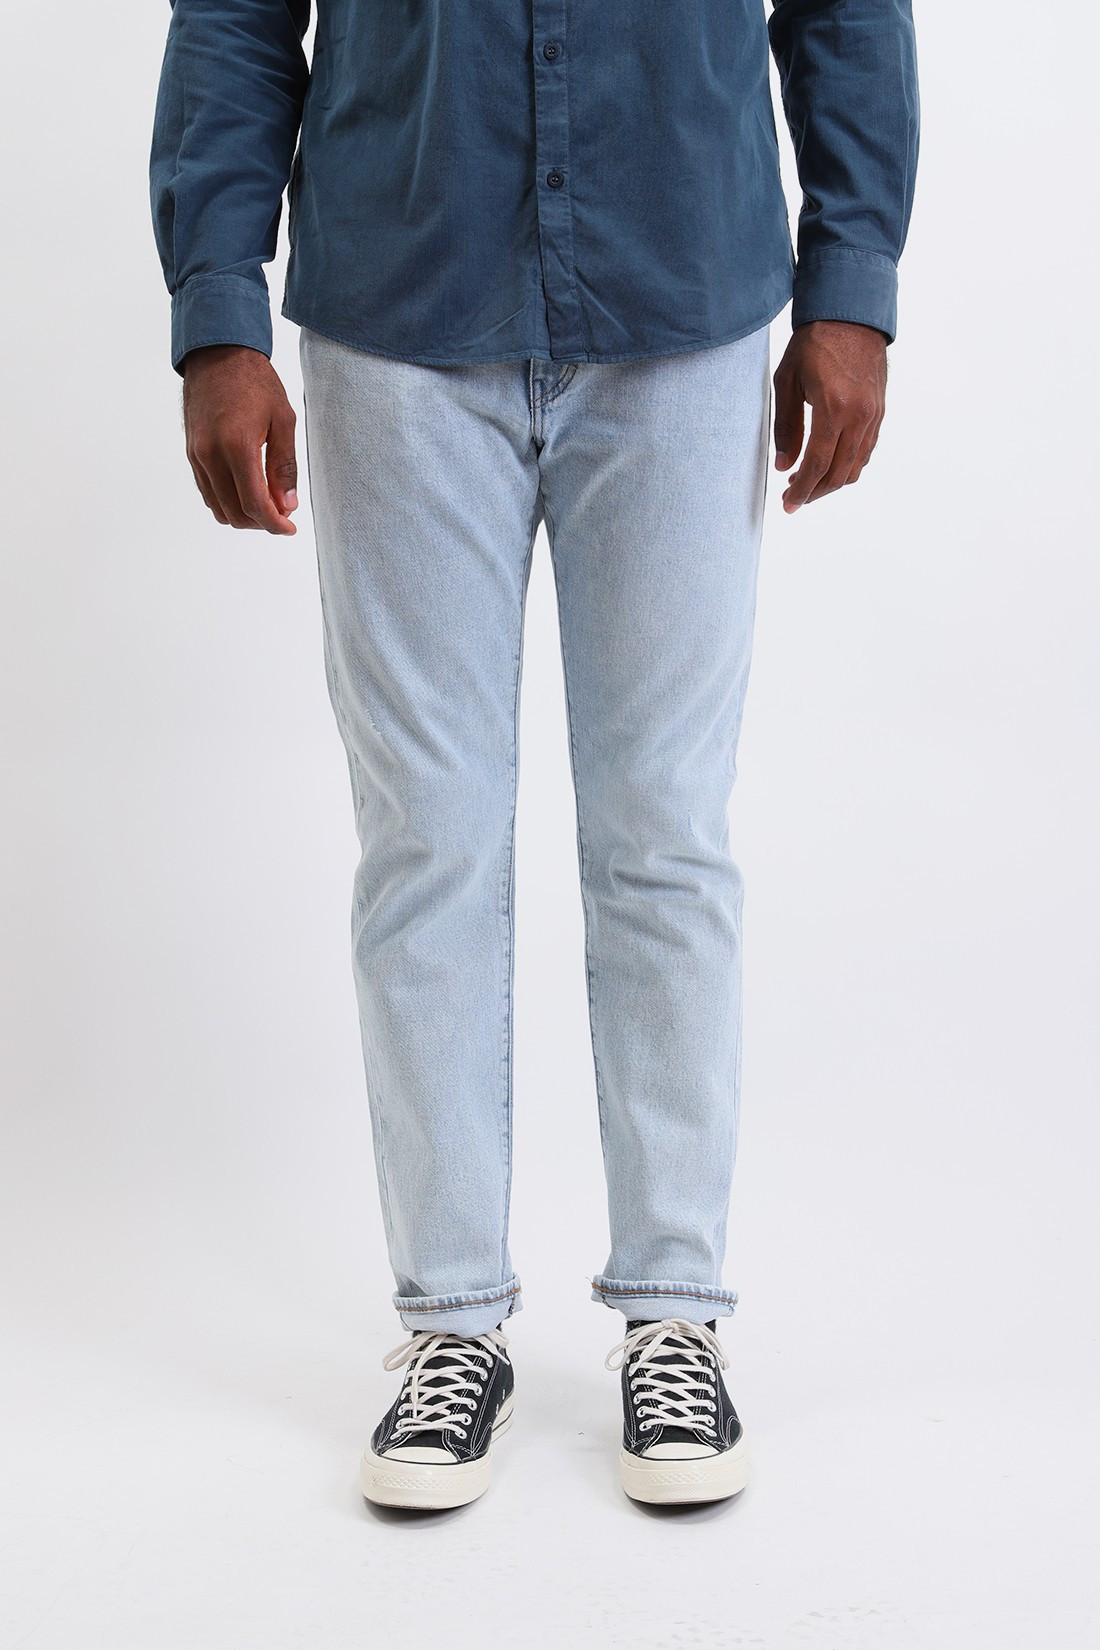 LEVI'S ® MADE AND CRAFTED / Lmc 511 lmc Indigo frost